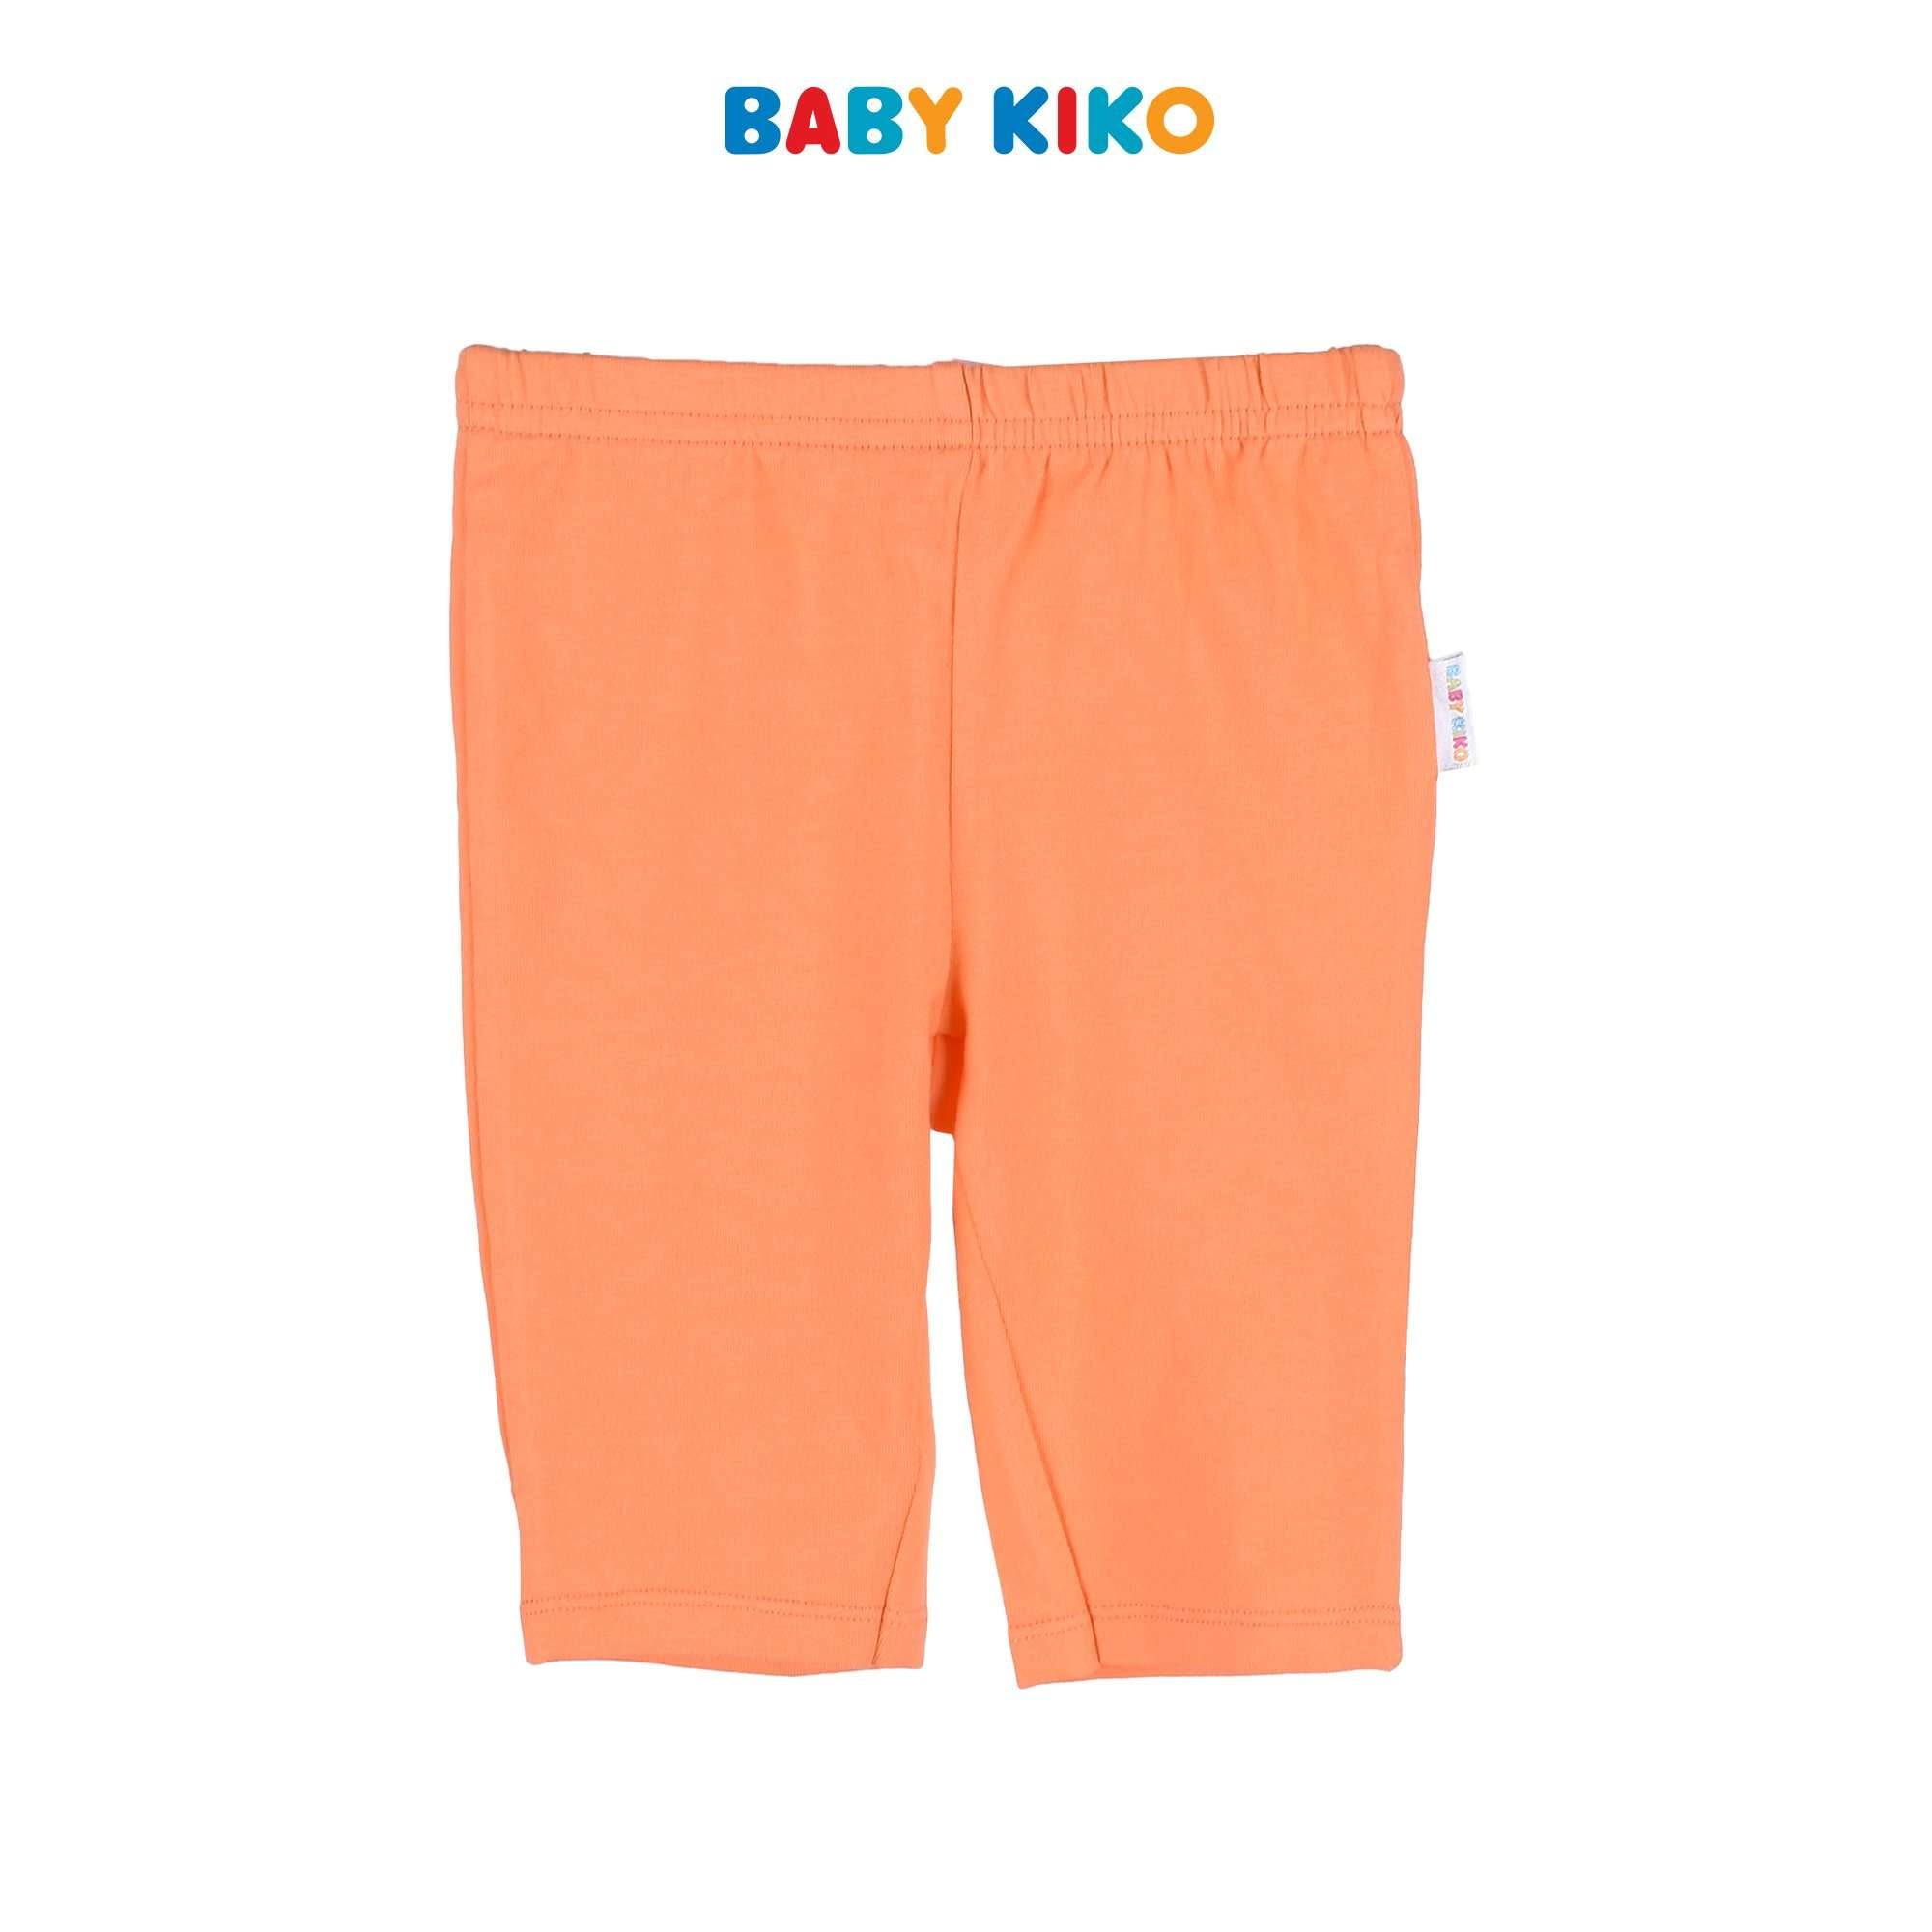 Baby KIKO Toddler Girl Short Sleeve Bermuda Red / Melange Knit 325168-412 : Buy Baby KIKO online at CMG.MY